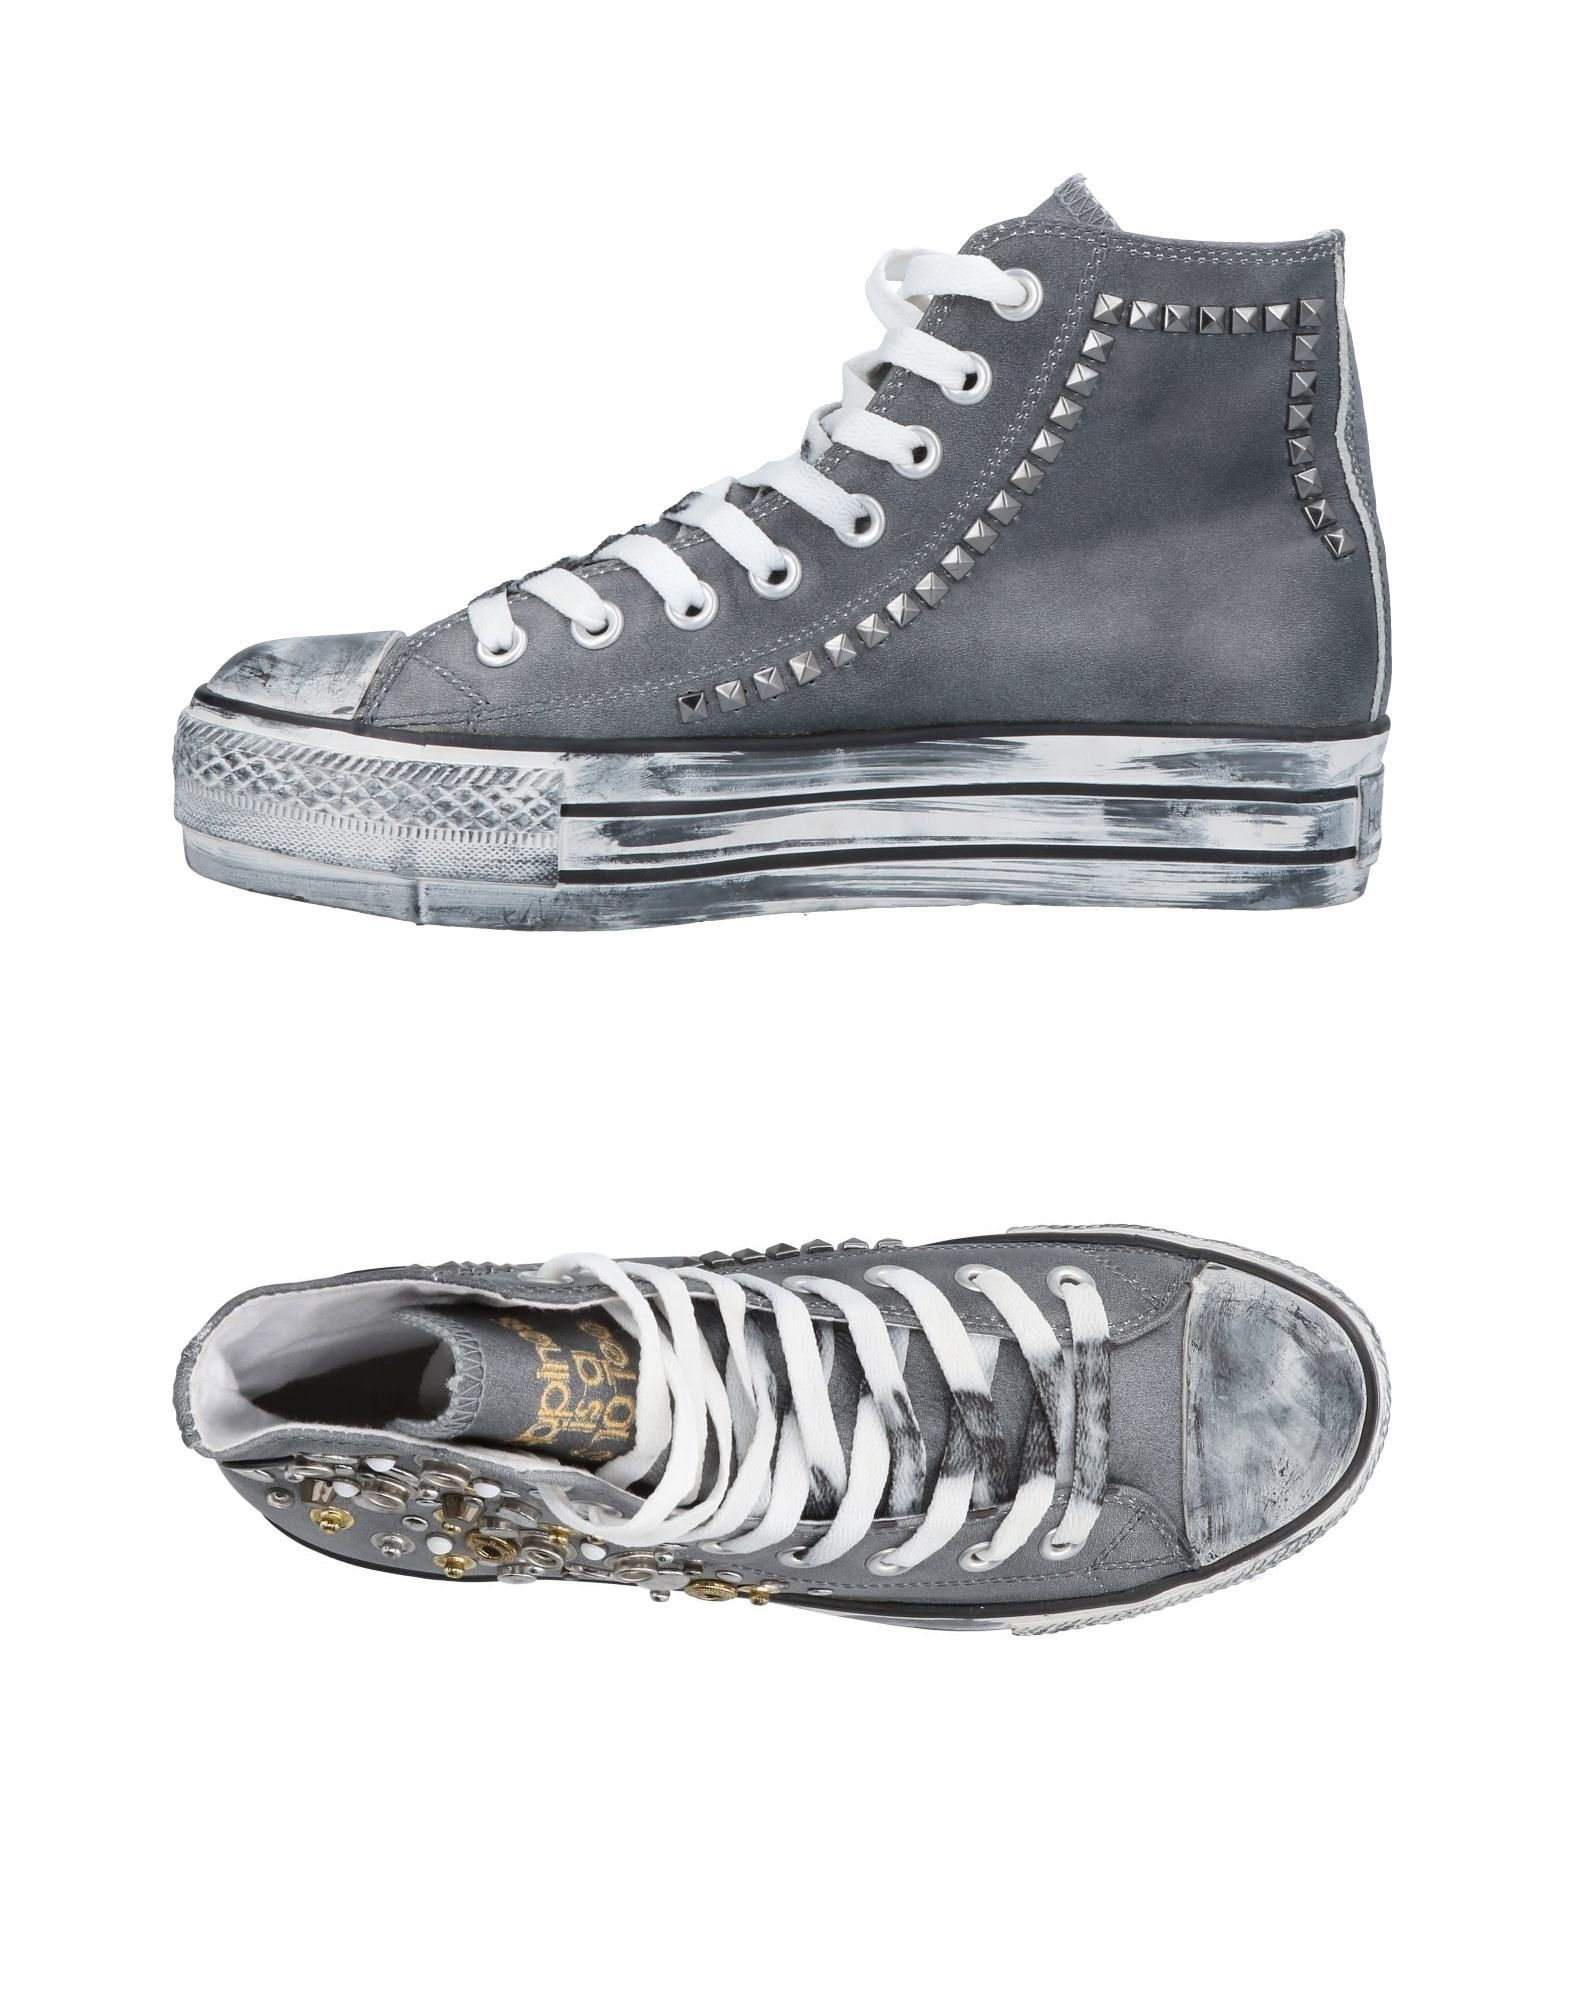 Baskets Happiness Gris Femme - Baskets Happiness Gris Happiness Chaussures casual sauvages 55e207